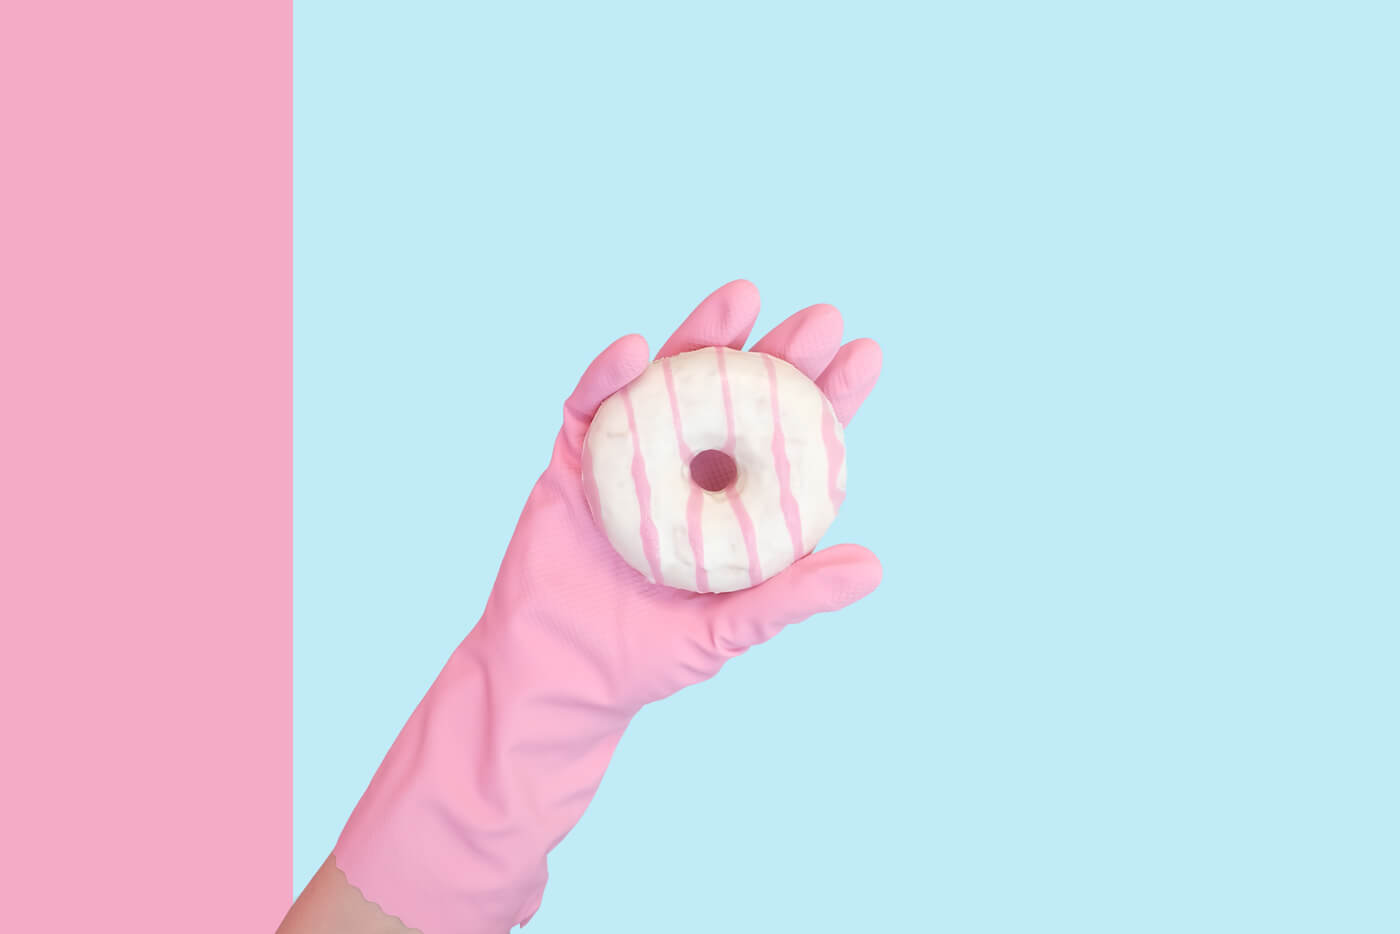 a hand holding a donut